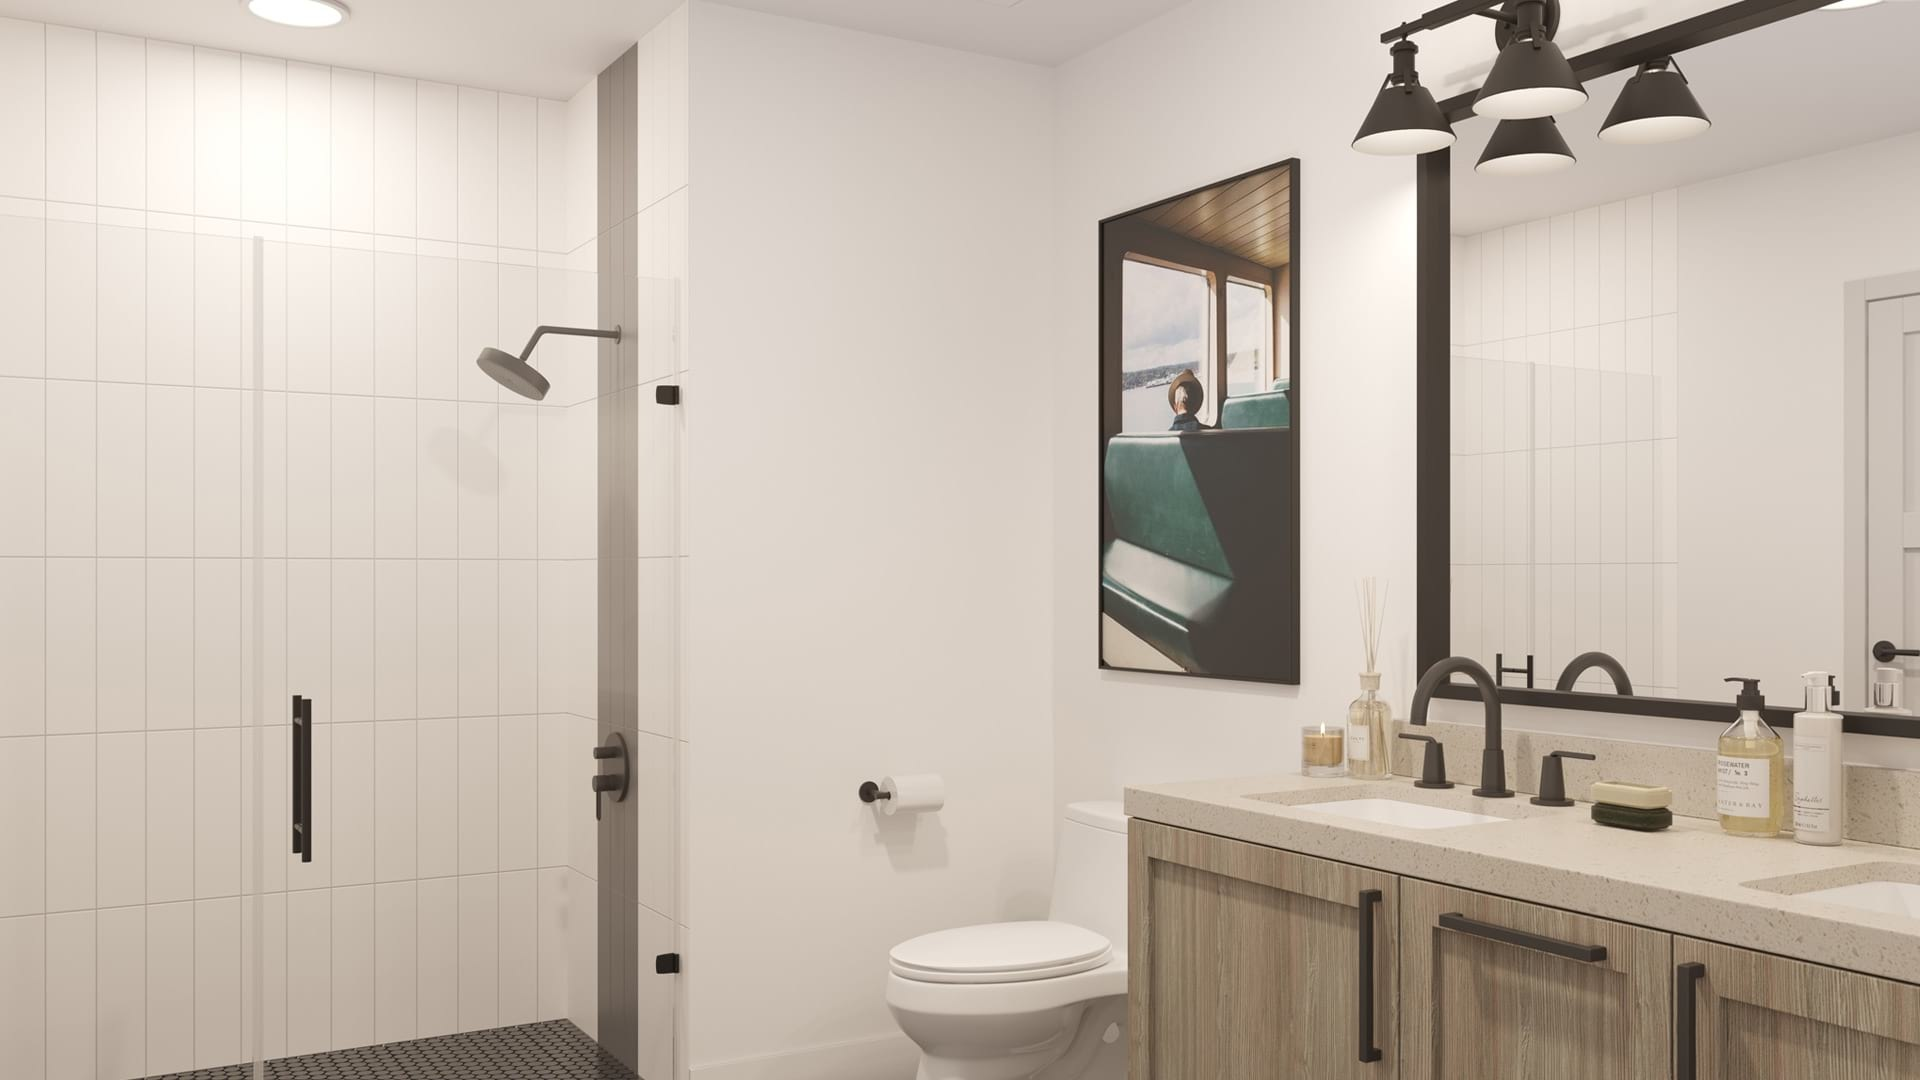 Bathroom with ample lighting and modern conveniences